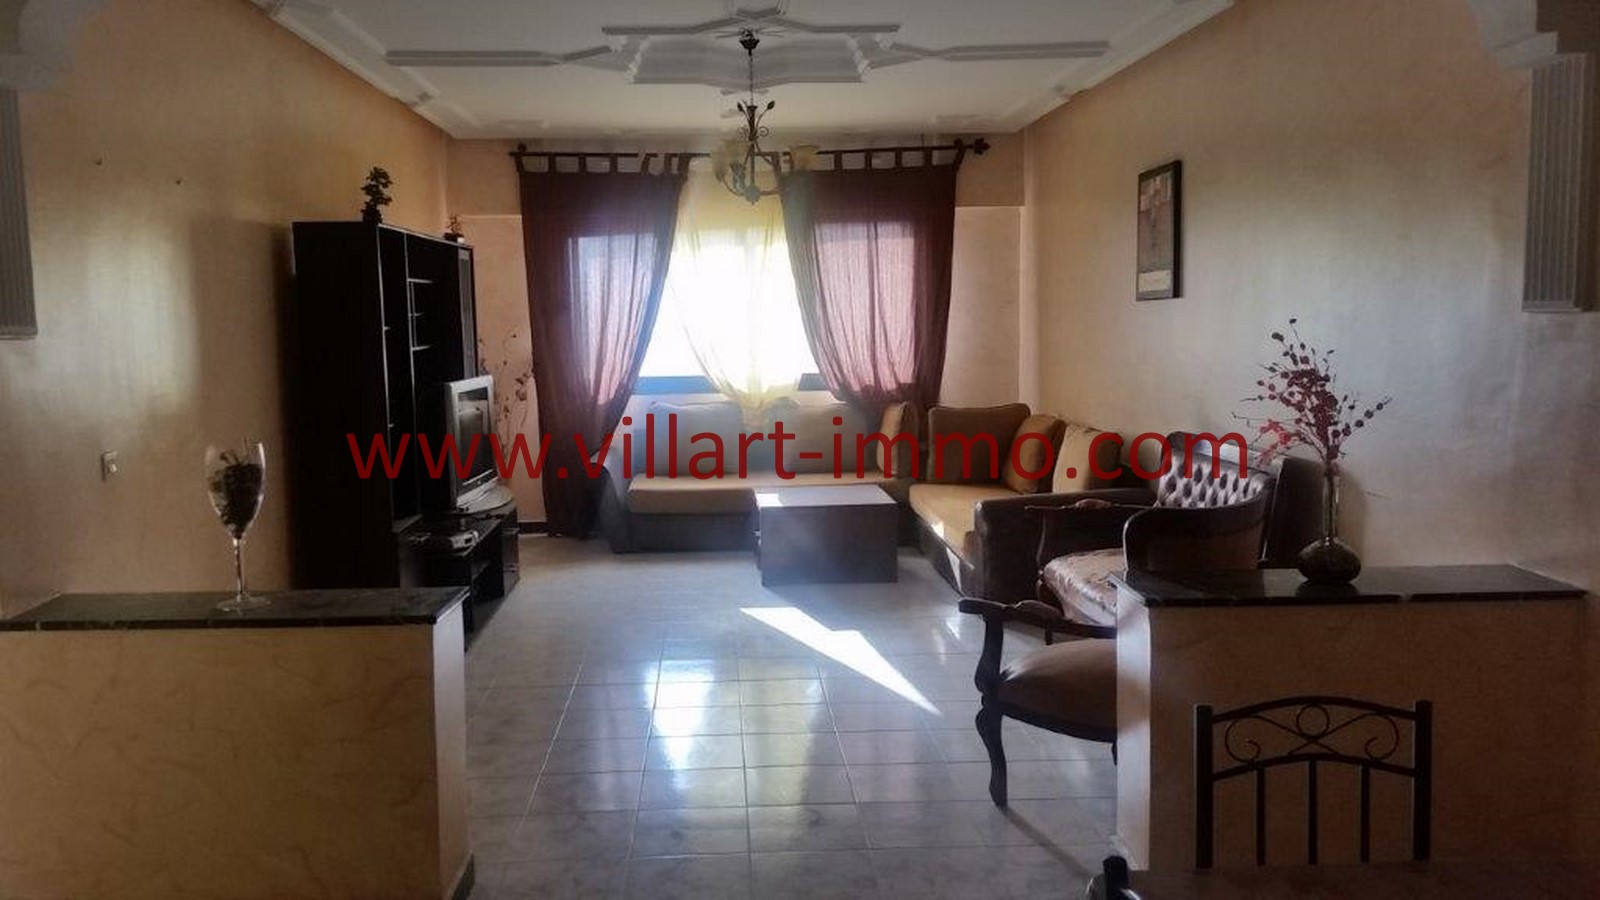 1-location-tanger-appartement-non-meublee-iberia-salon-1-l1013-villart-immo-agence-immobiliere-1